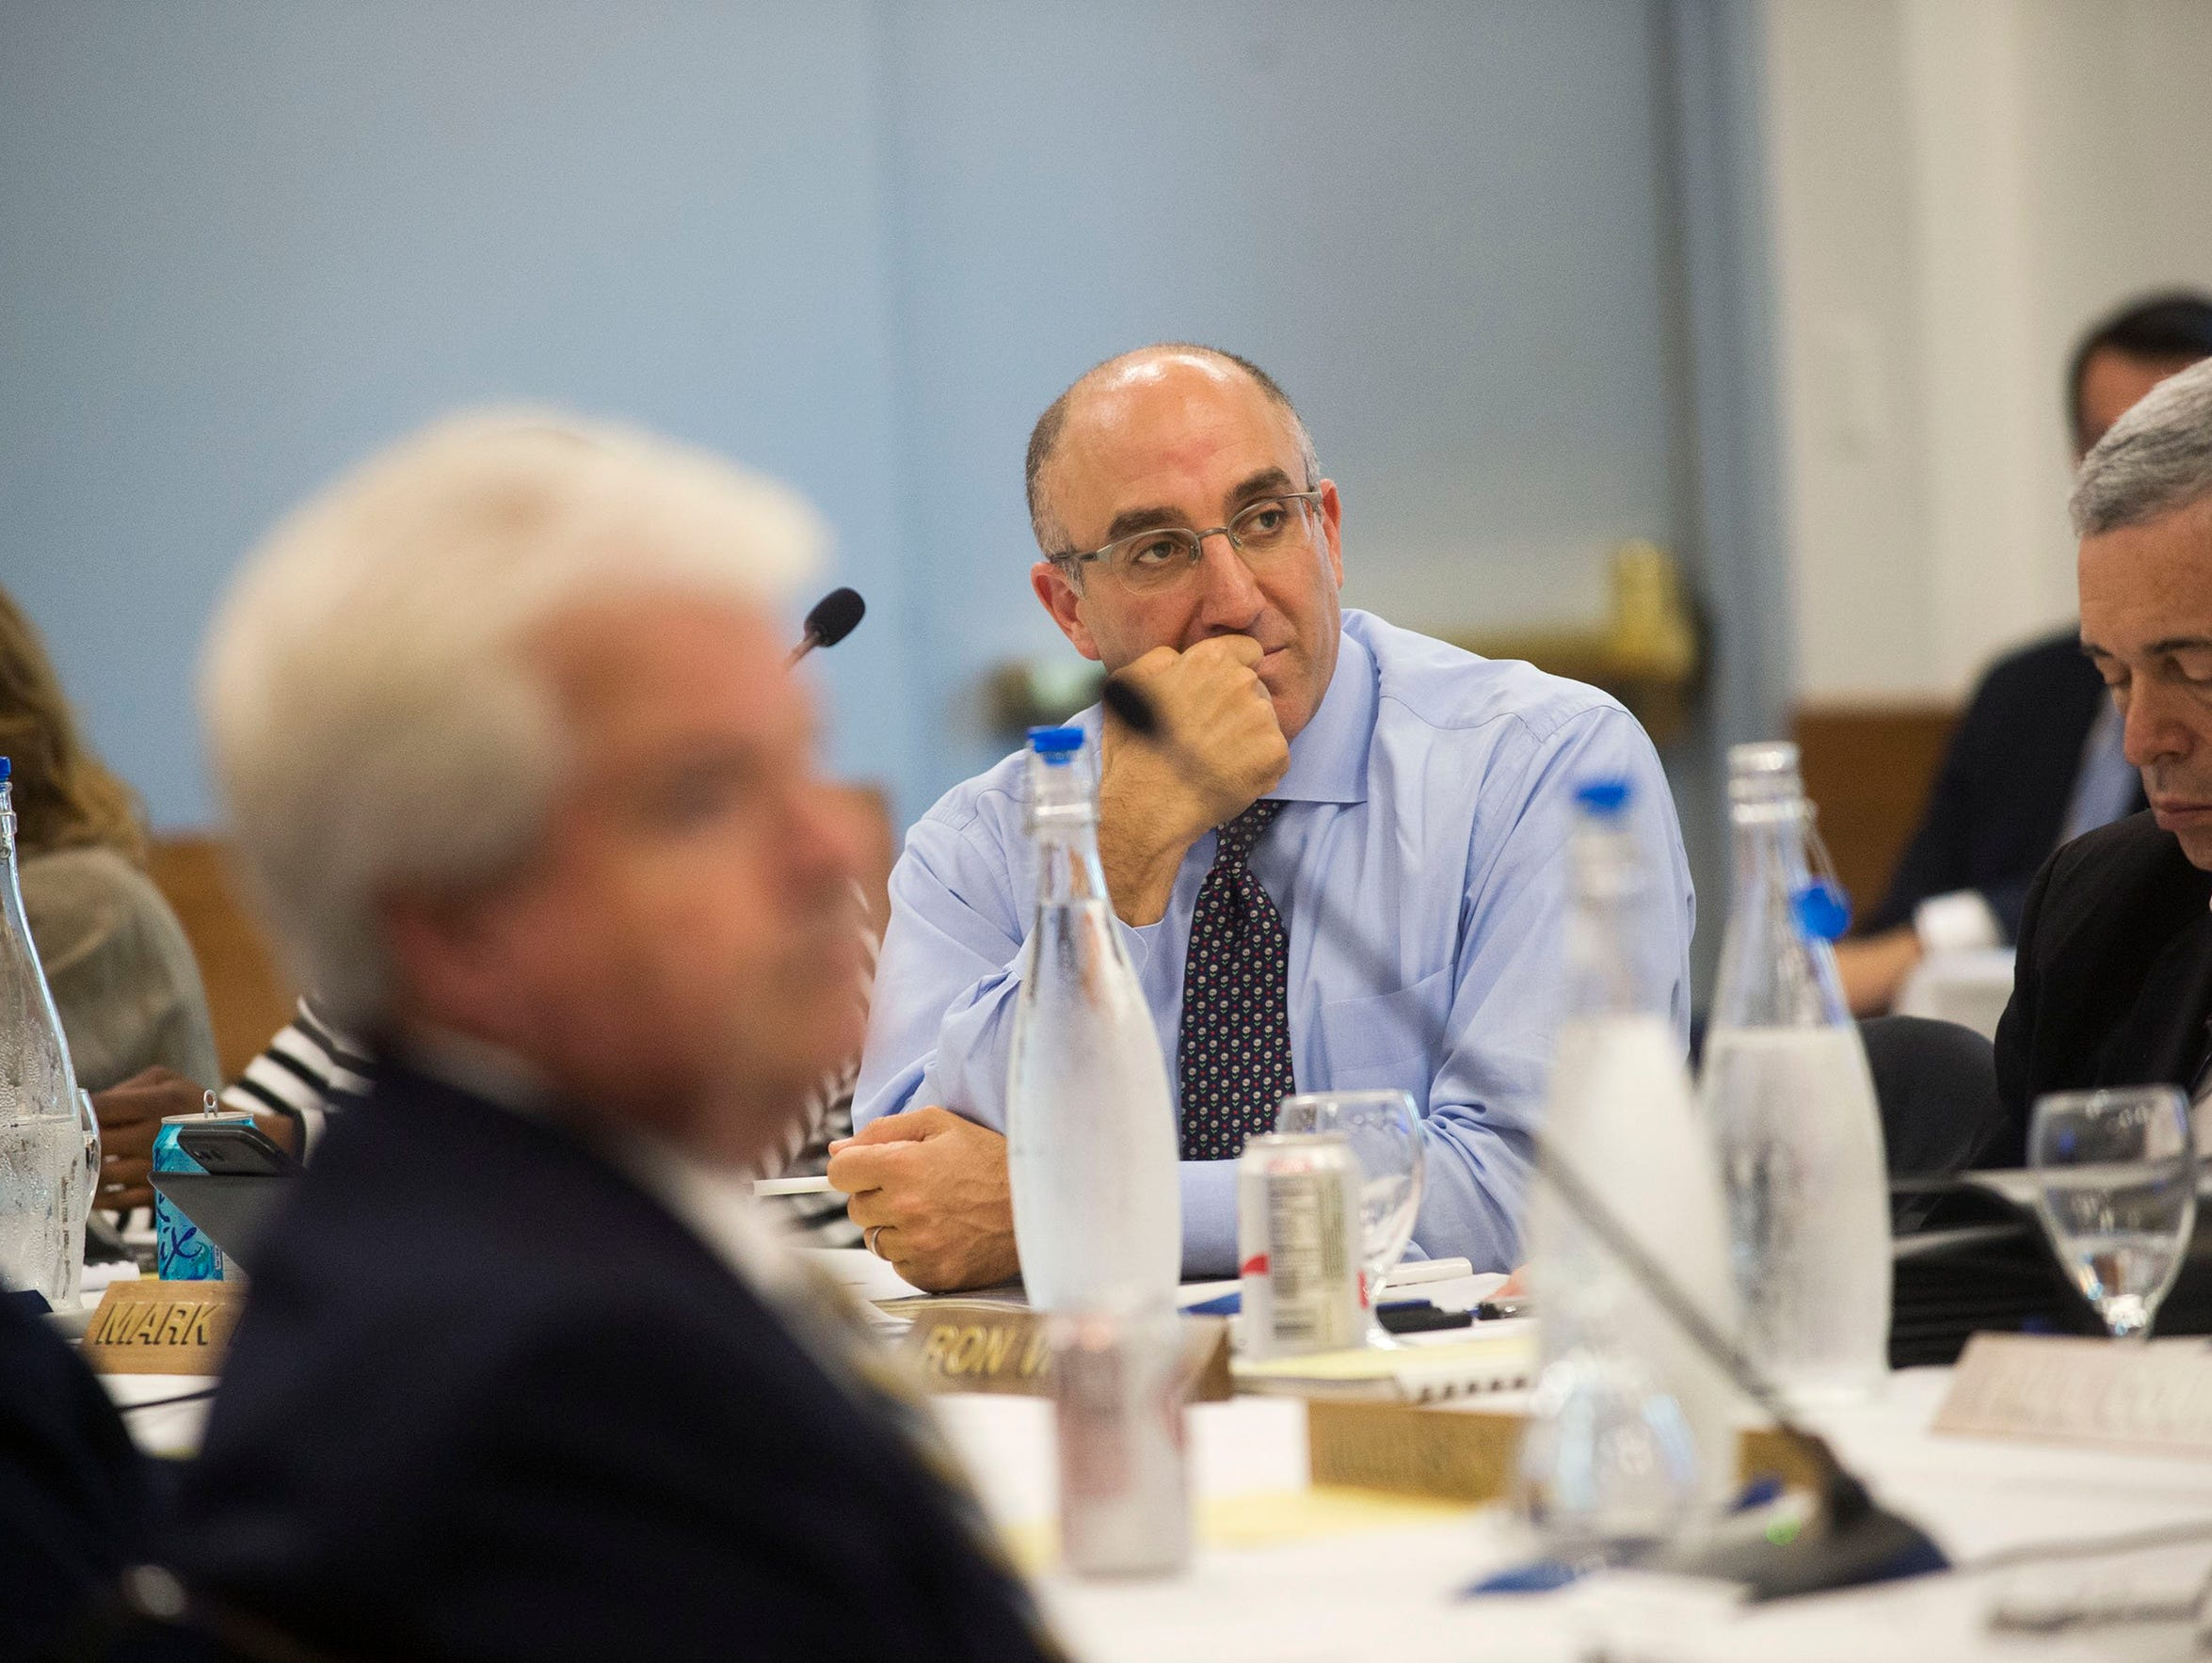 University of Michigan Regent Mark Bernstein listens during the Board of Regents meeting on Thursday, June 15, 2017, at the Michigan Union in Ann Arbor.